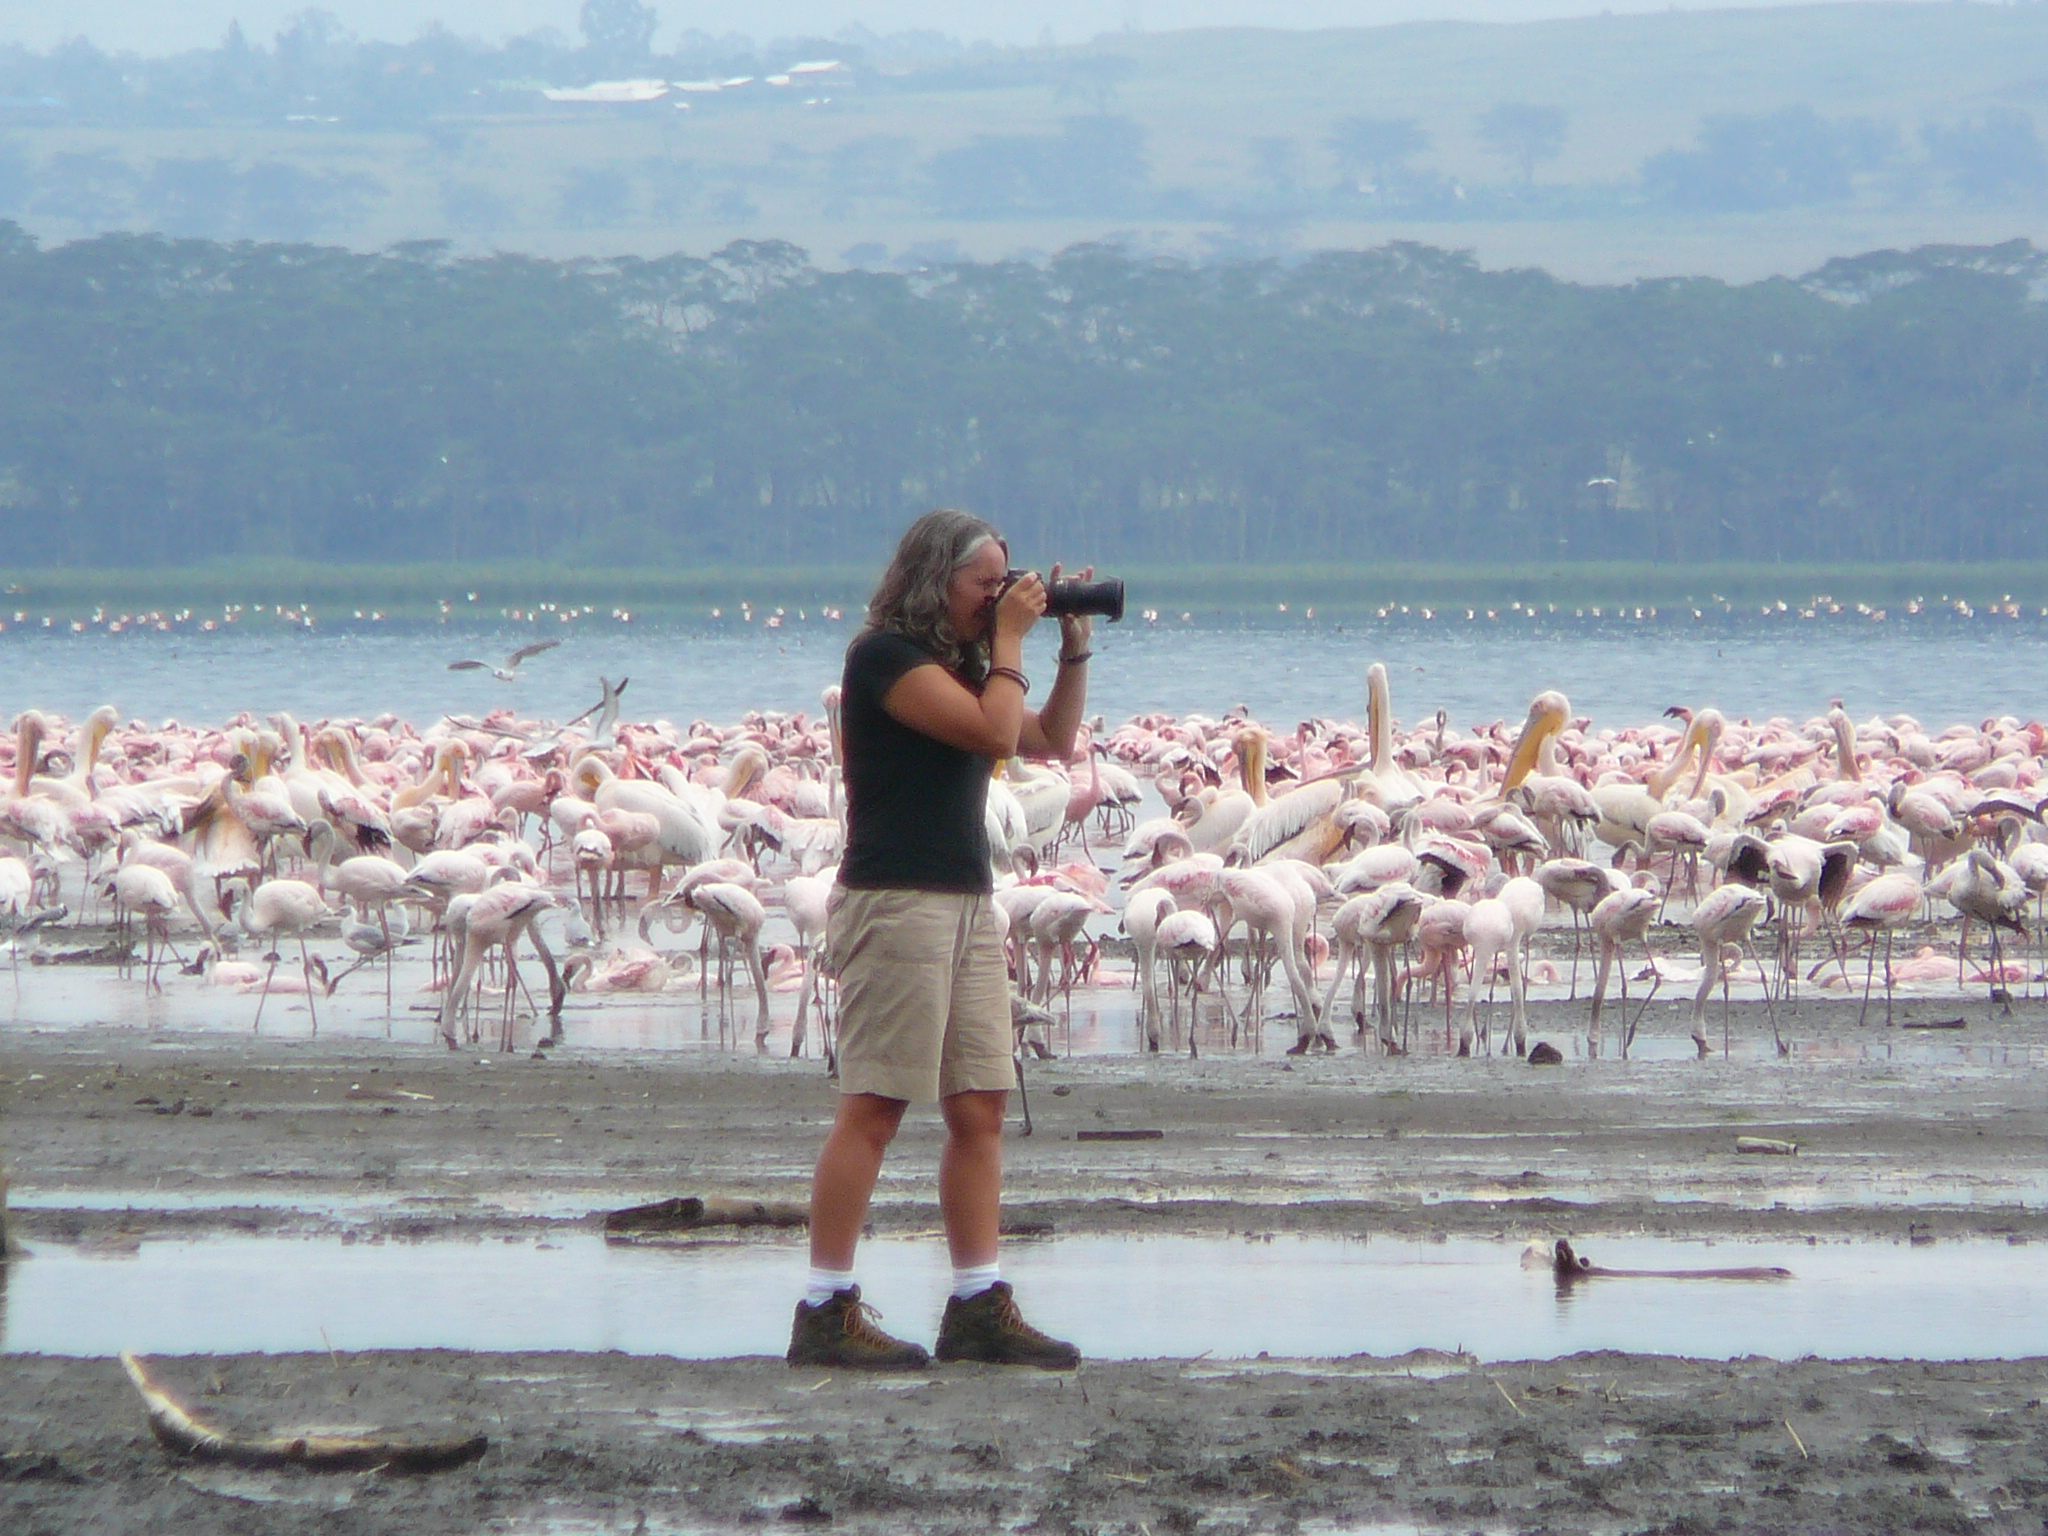 shooting-flamingo-lake-nakuru-kenya